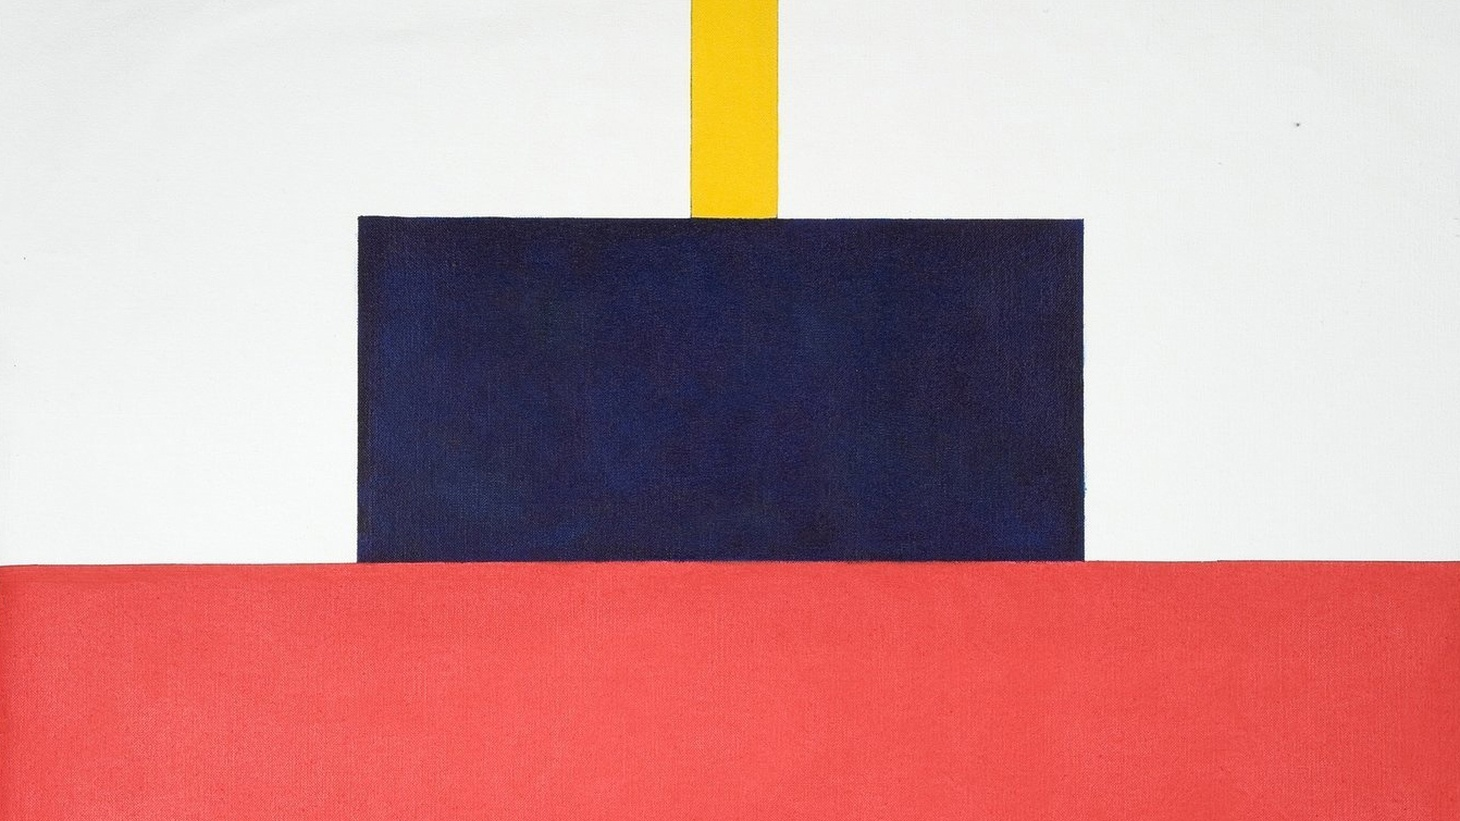 Hunter Drohojowska-Philp says the show at Marc Selwyn Fine Art introduces the English minimalist to a wider audience.